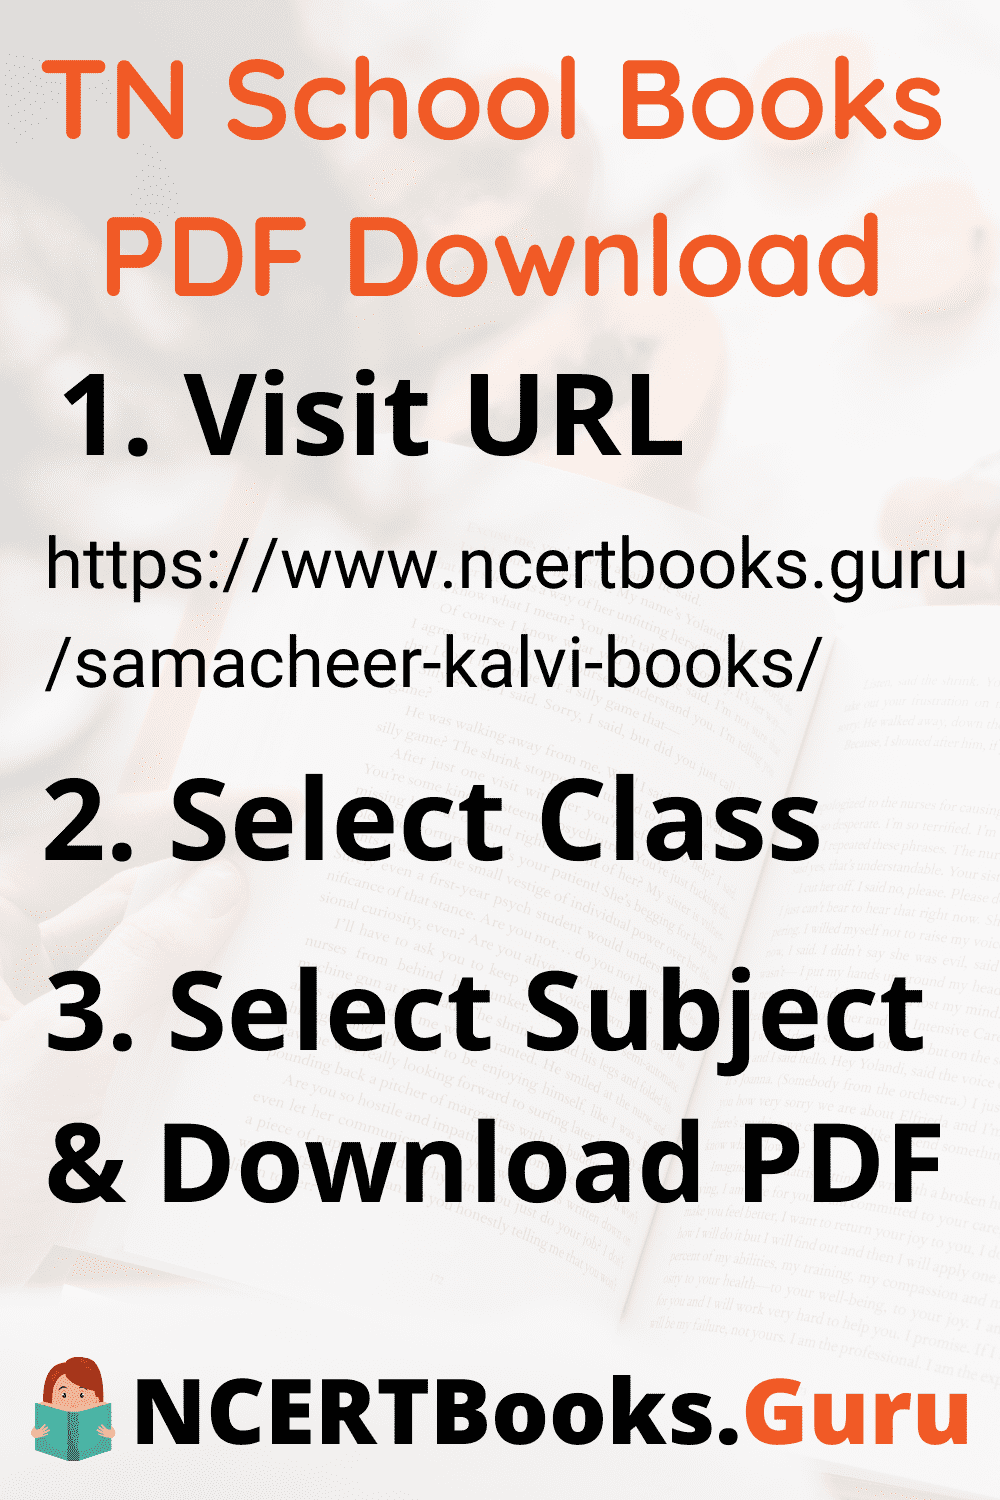 TN School Books PDF Download